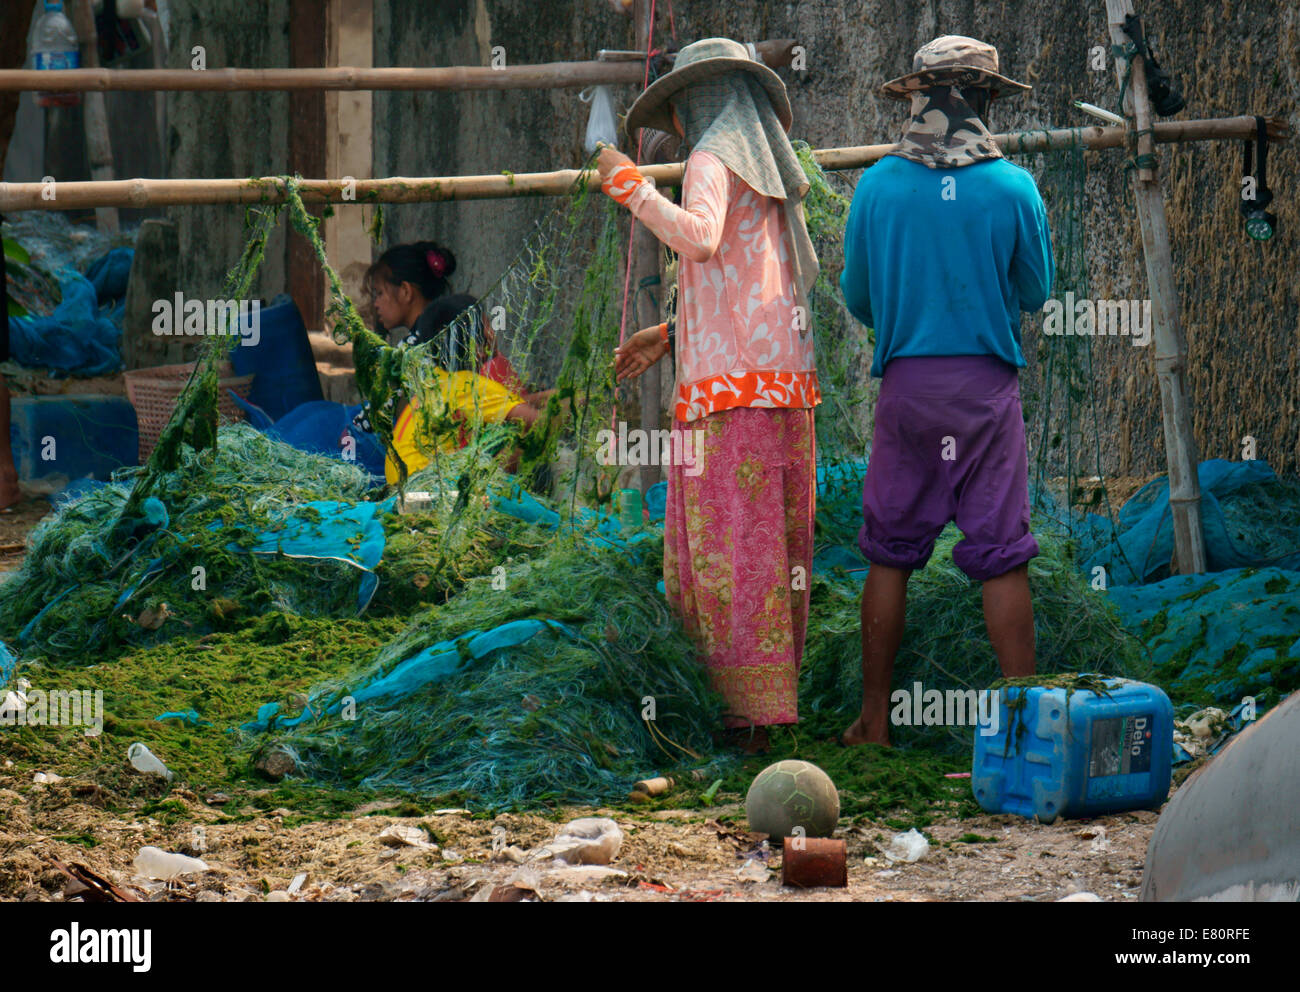 Fishermen's family is tending to nets,up keep,getting ready for next ketch - Stock Image